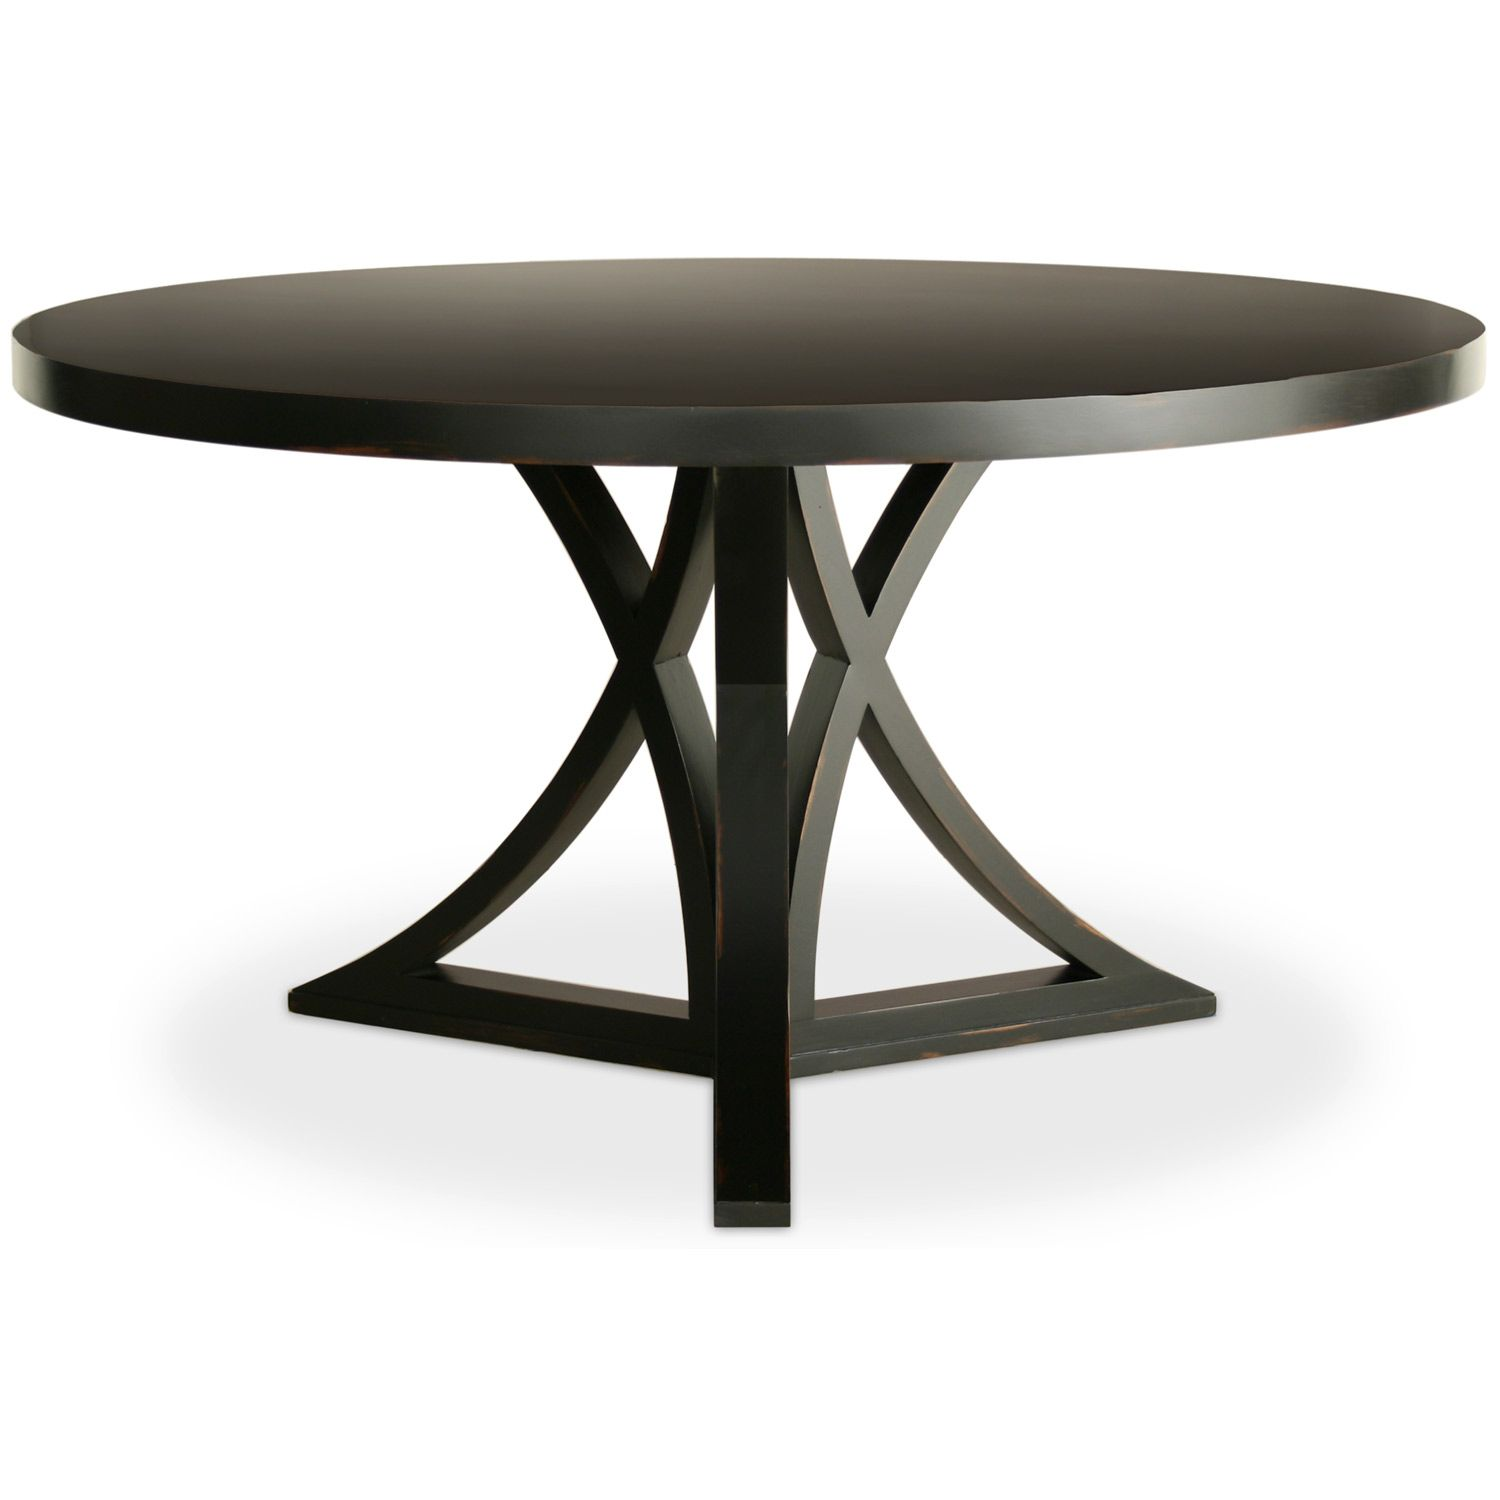 Dining Room Floyd Round Tables In Black And Unique Design Wooden Material Table Set